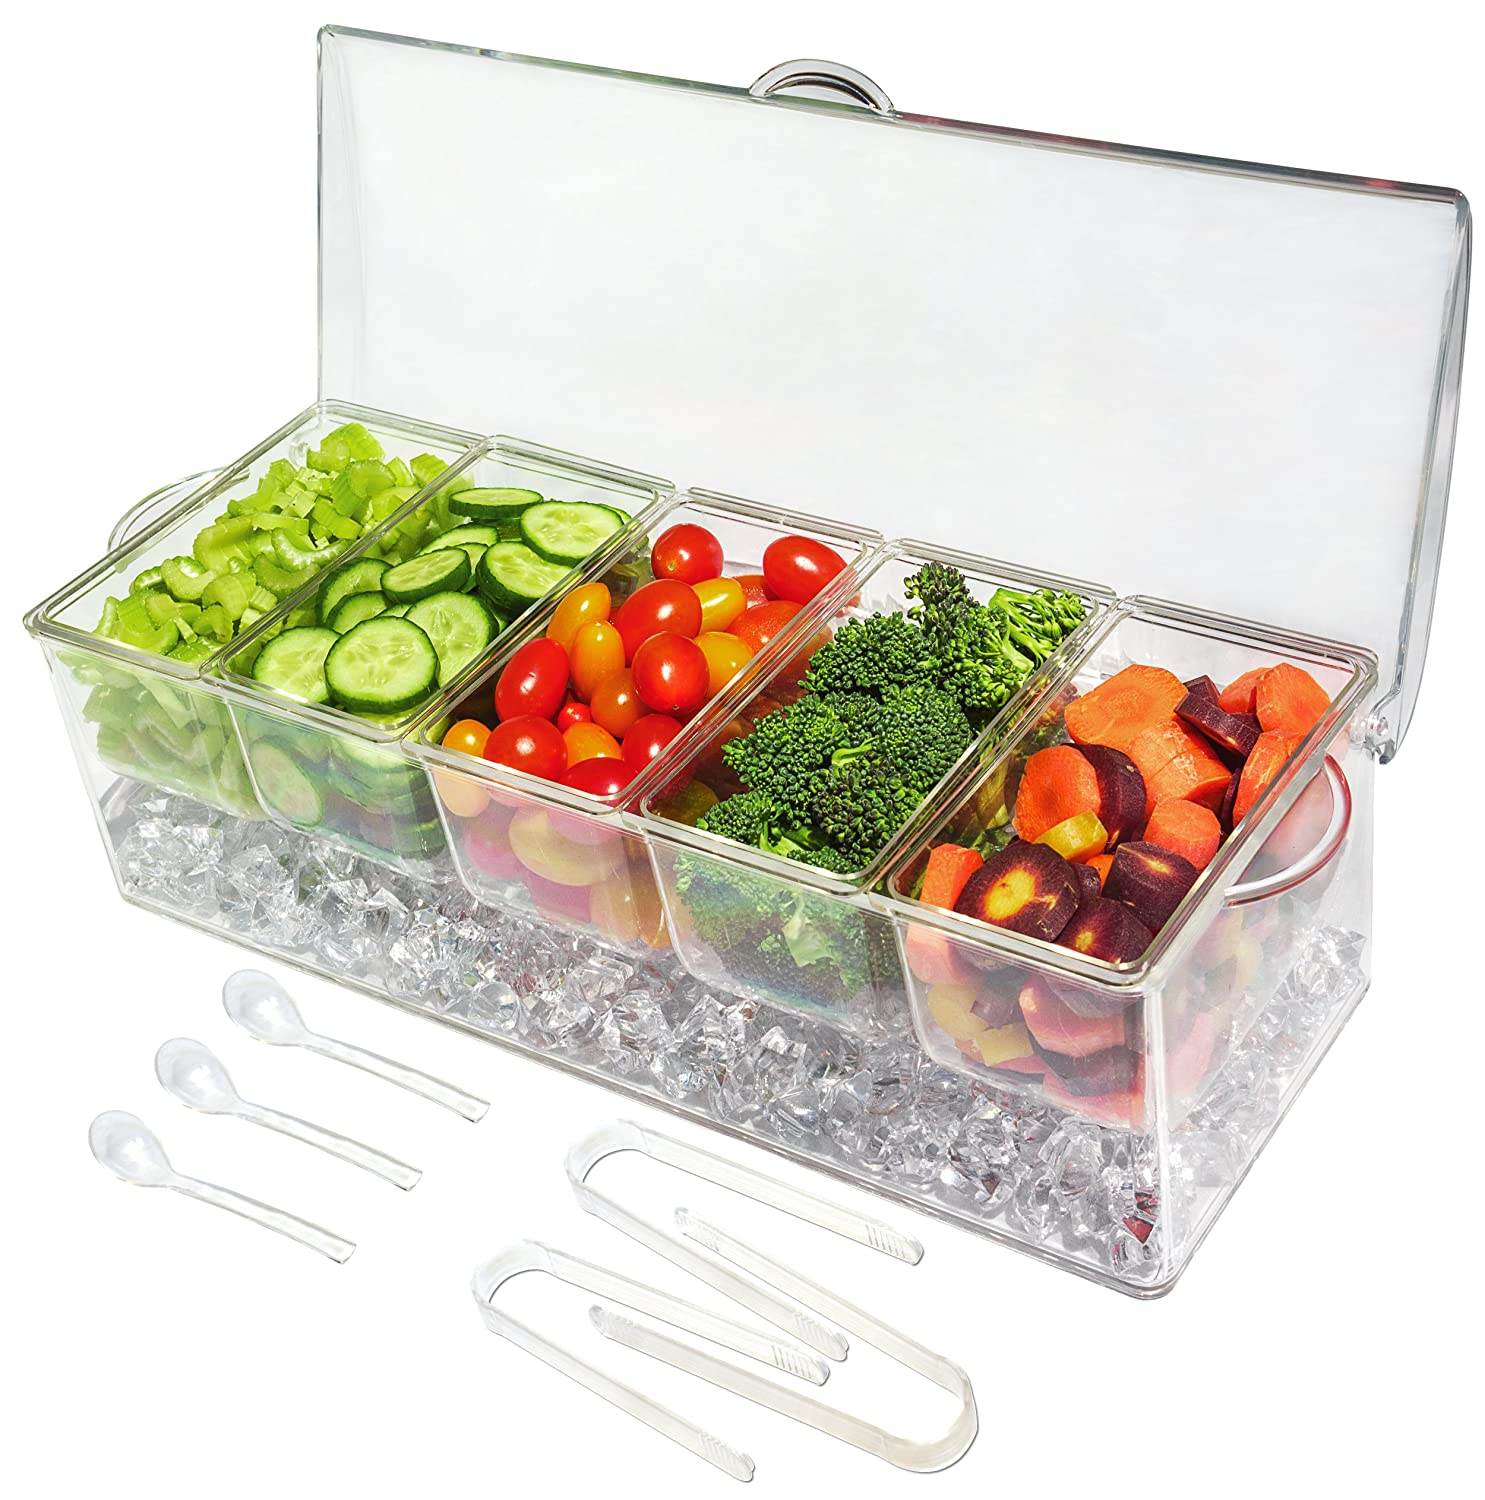 Ice Chilled 5 Compartment Condiment Server Caddy - Serving Tray Container with 5 Removable Dishes with over 2 Cup Capacity Each and Hinged Lid | 3 Serving Spoons + 3 Tongs Included Elegant Events